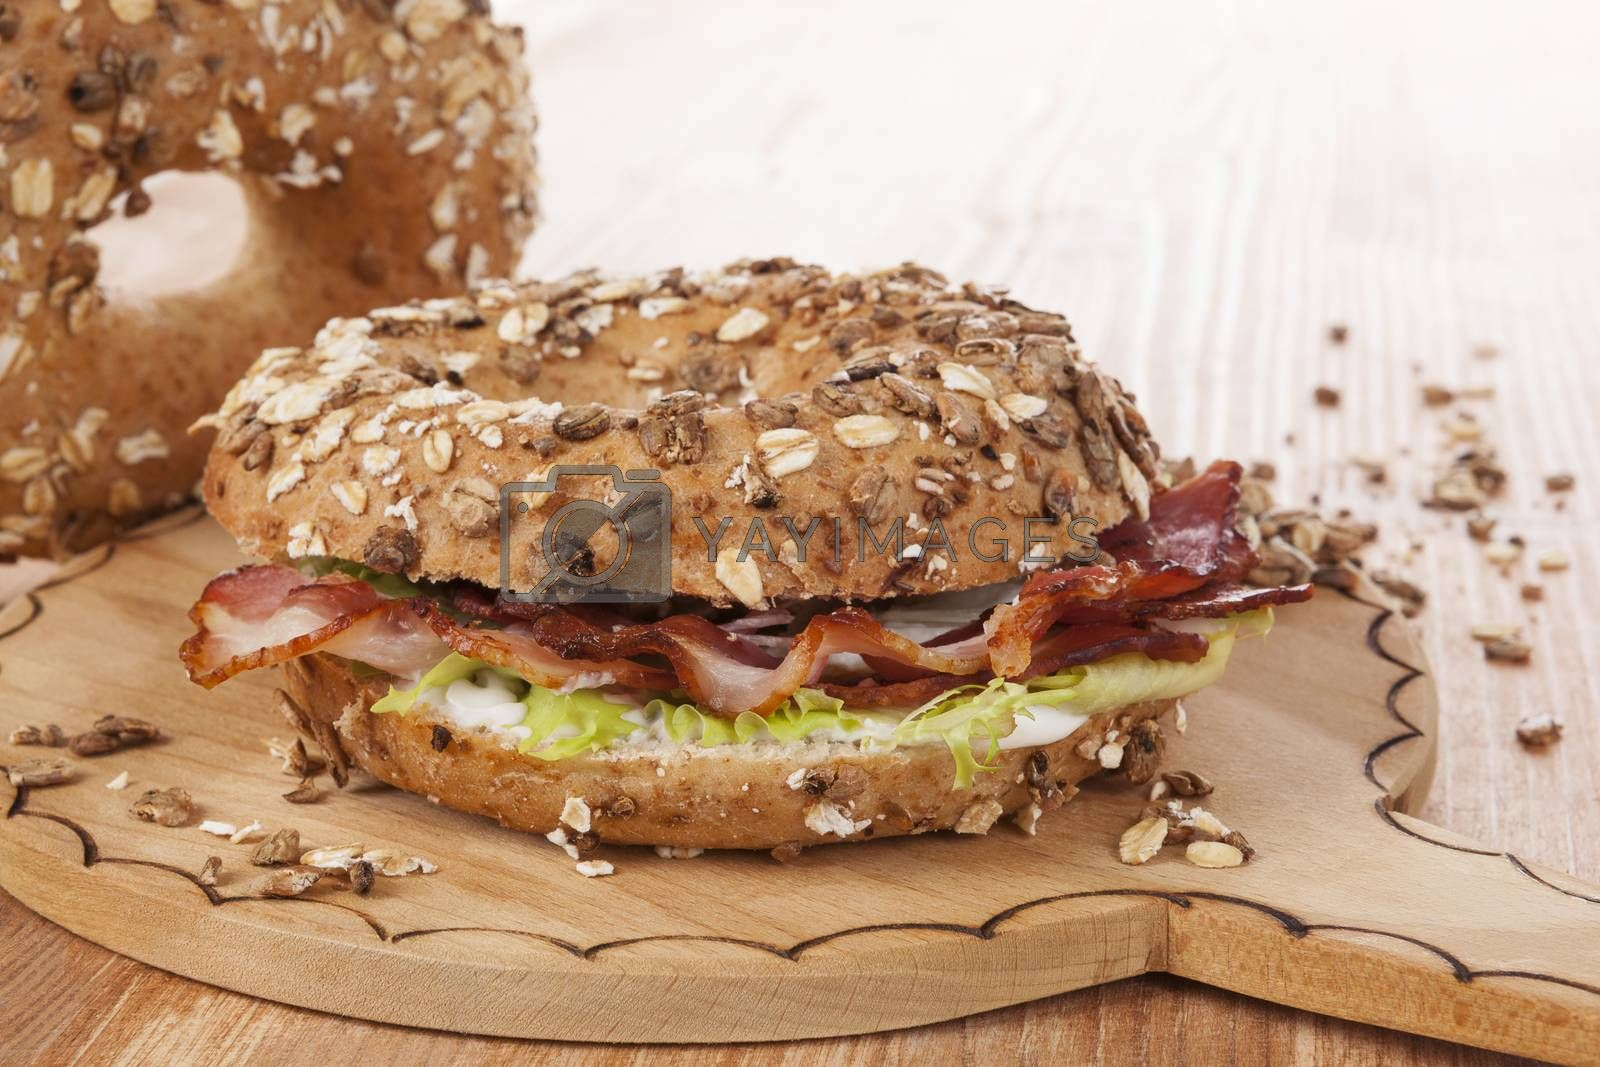 Whole grain bagel with bacon on wooden kitchen board on wooden background. Traditional bagel eating.